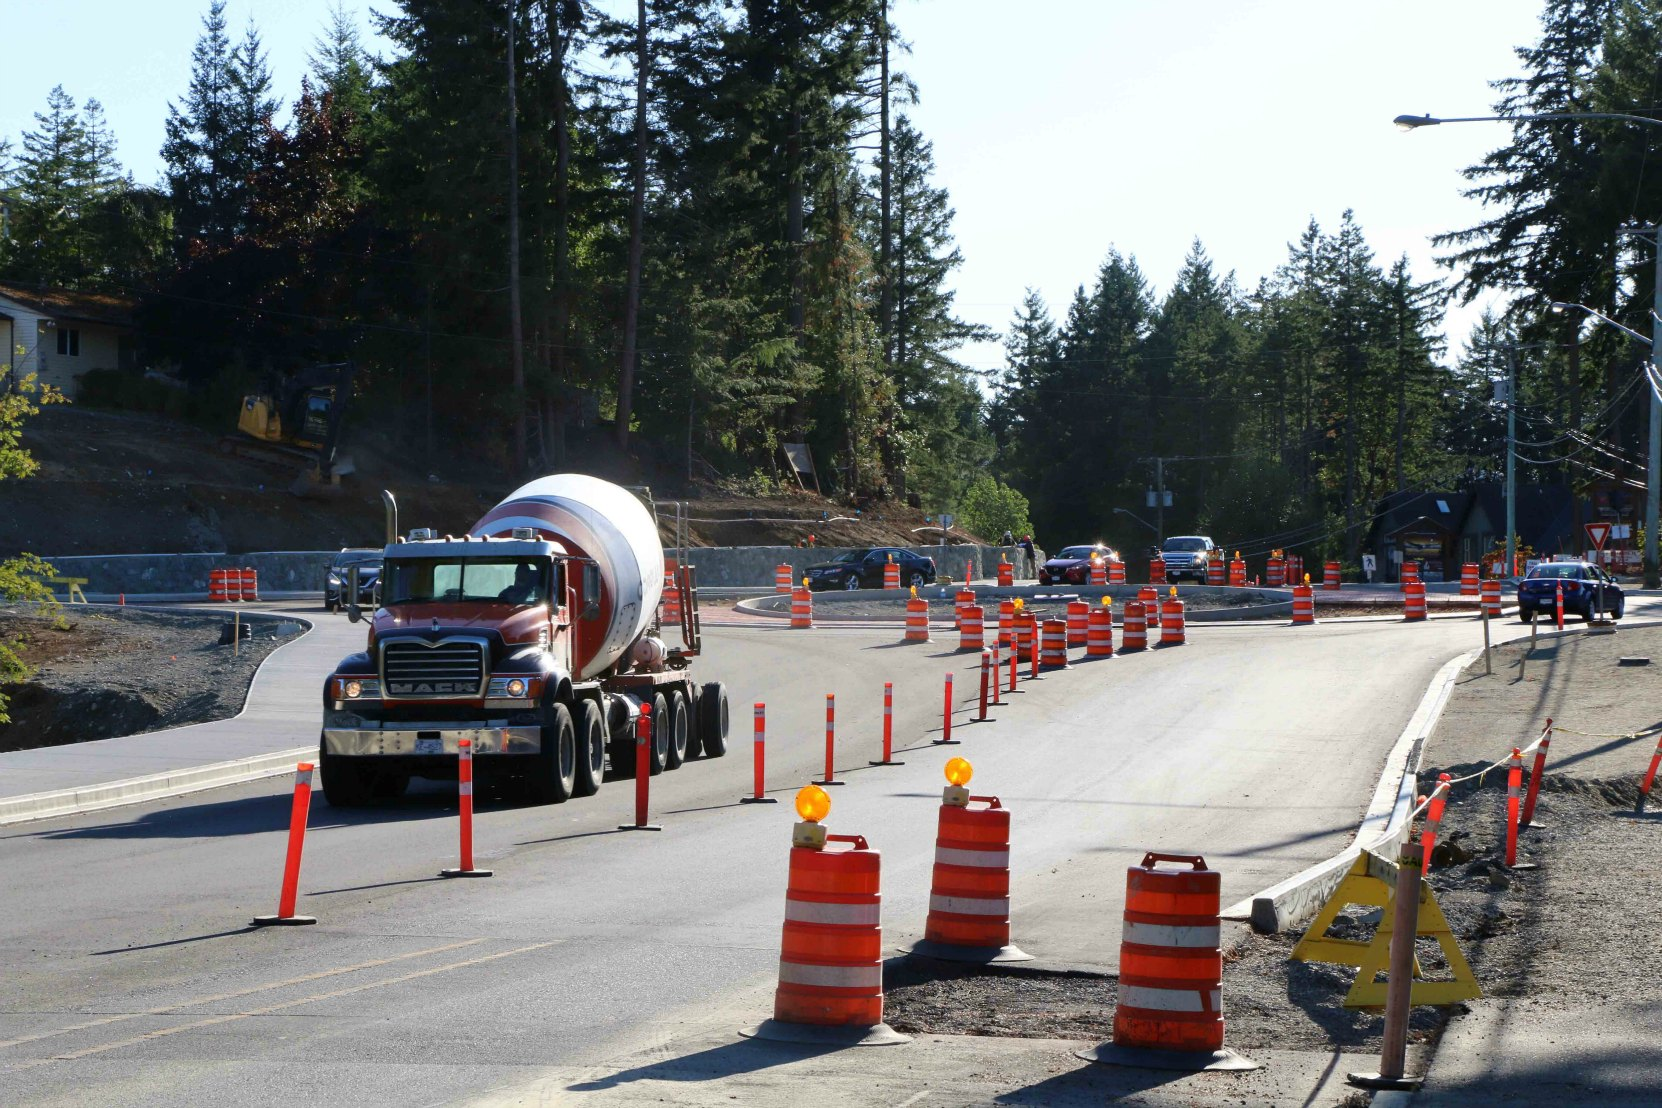 Highway construction zones in British Columbia are typically marked with Orange and Black signs, pylons and markers (photo by WestCoastDriverTraining.com)